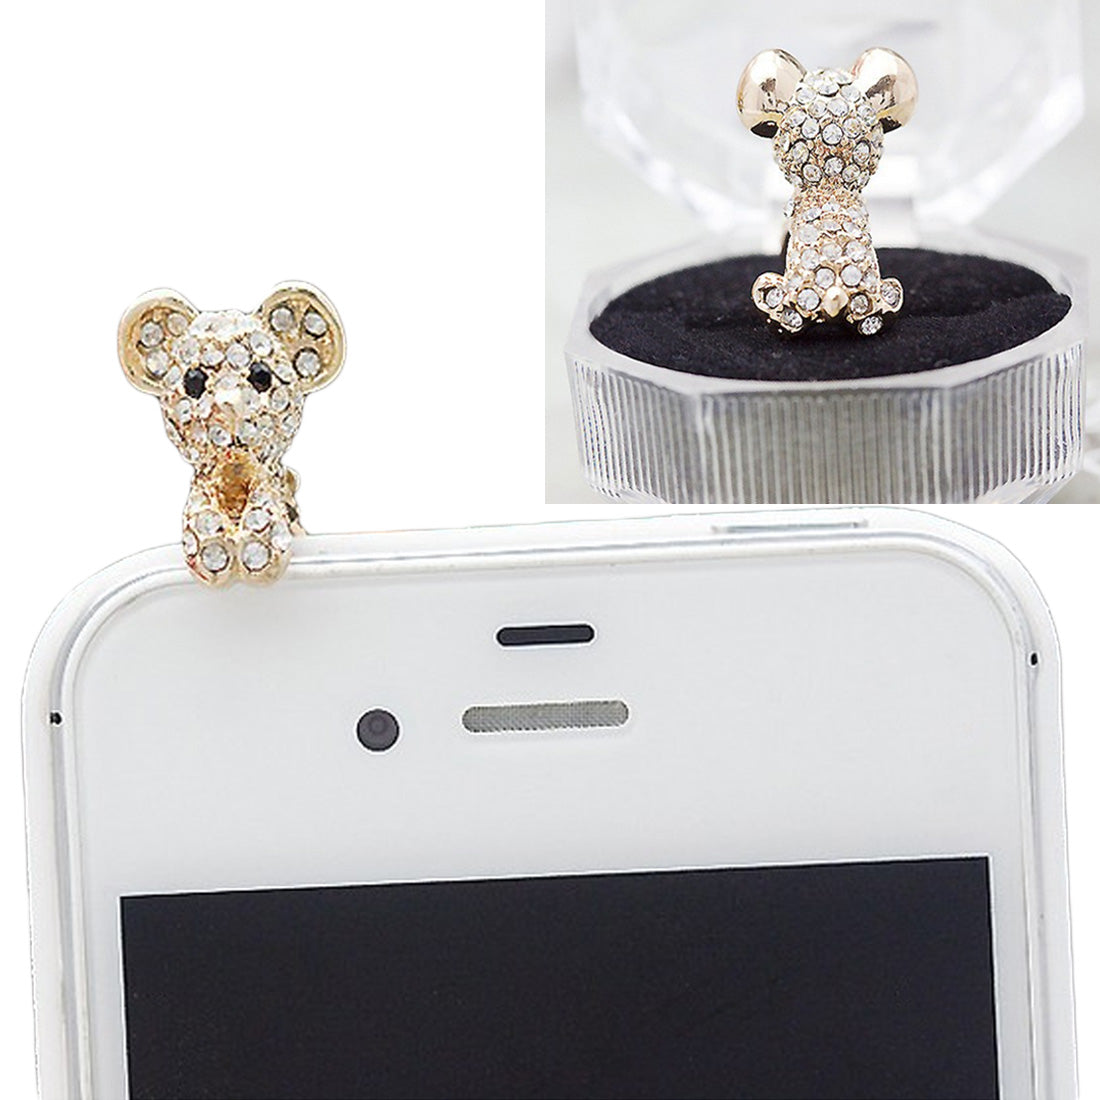 Costbuys  Newest Cute Dog Design Earphone Dust Plug Dustproof Plug Caps Cell Phone Accessories For all 3.5mm Earphone - White